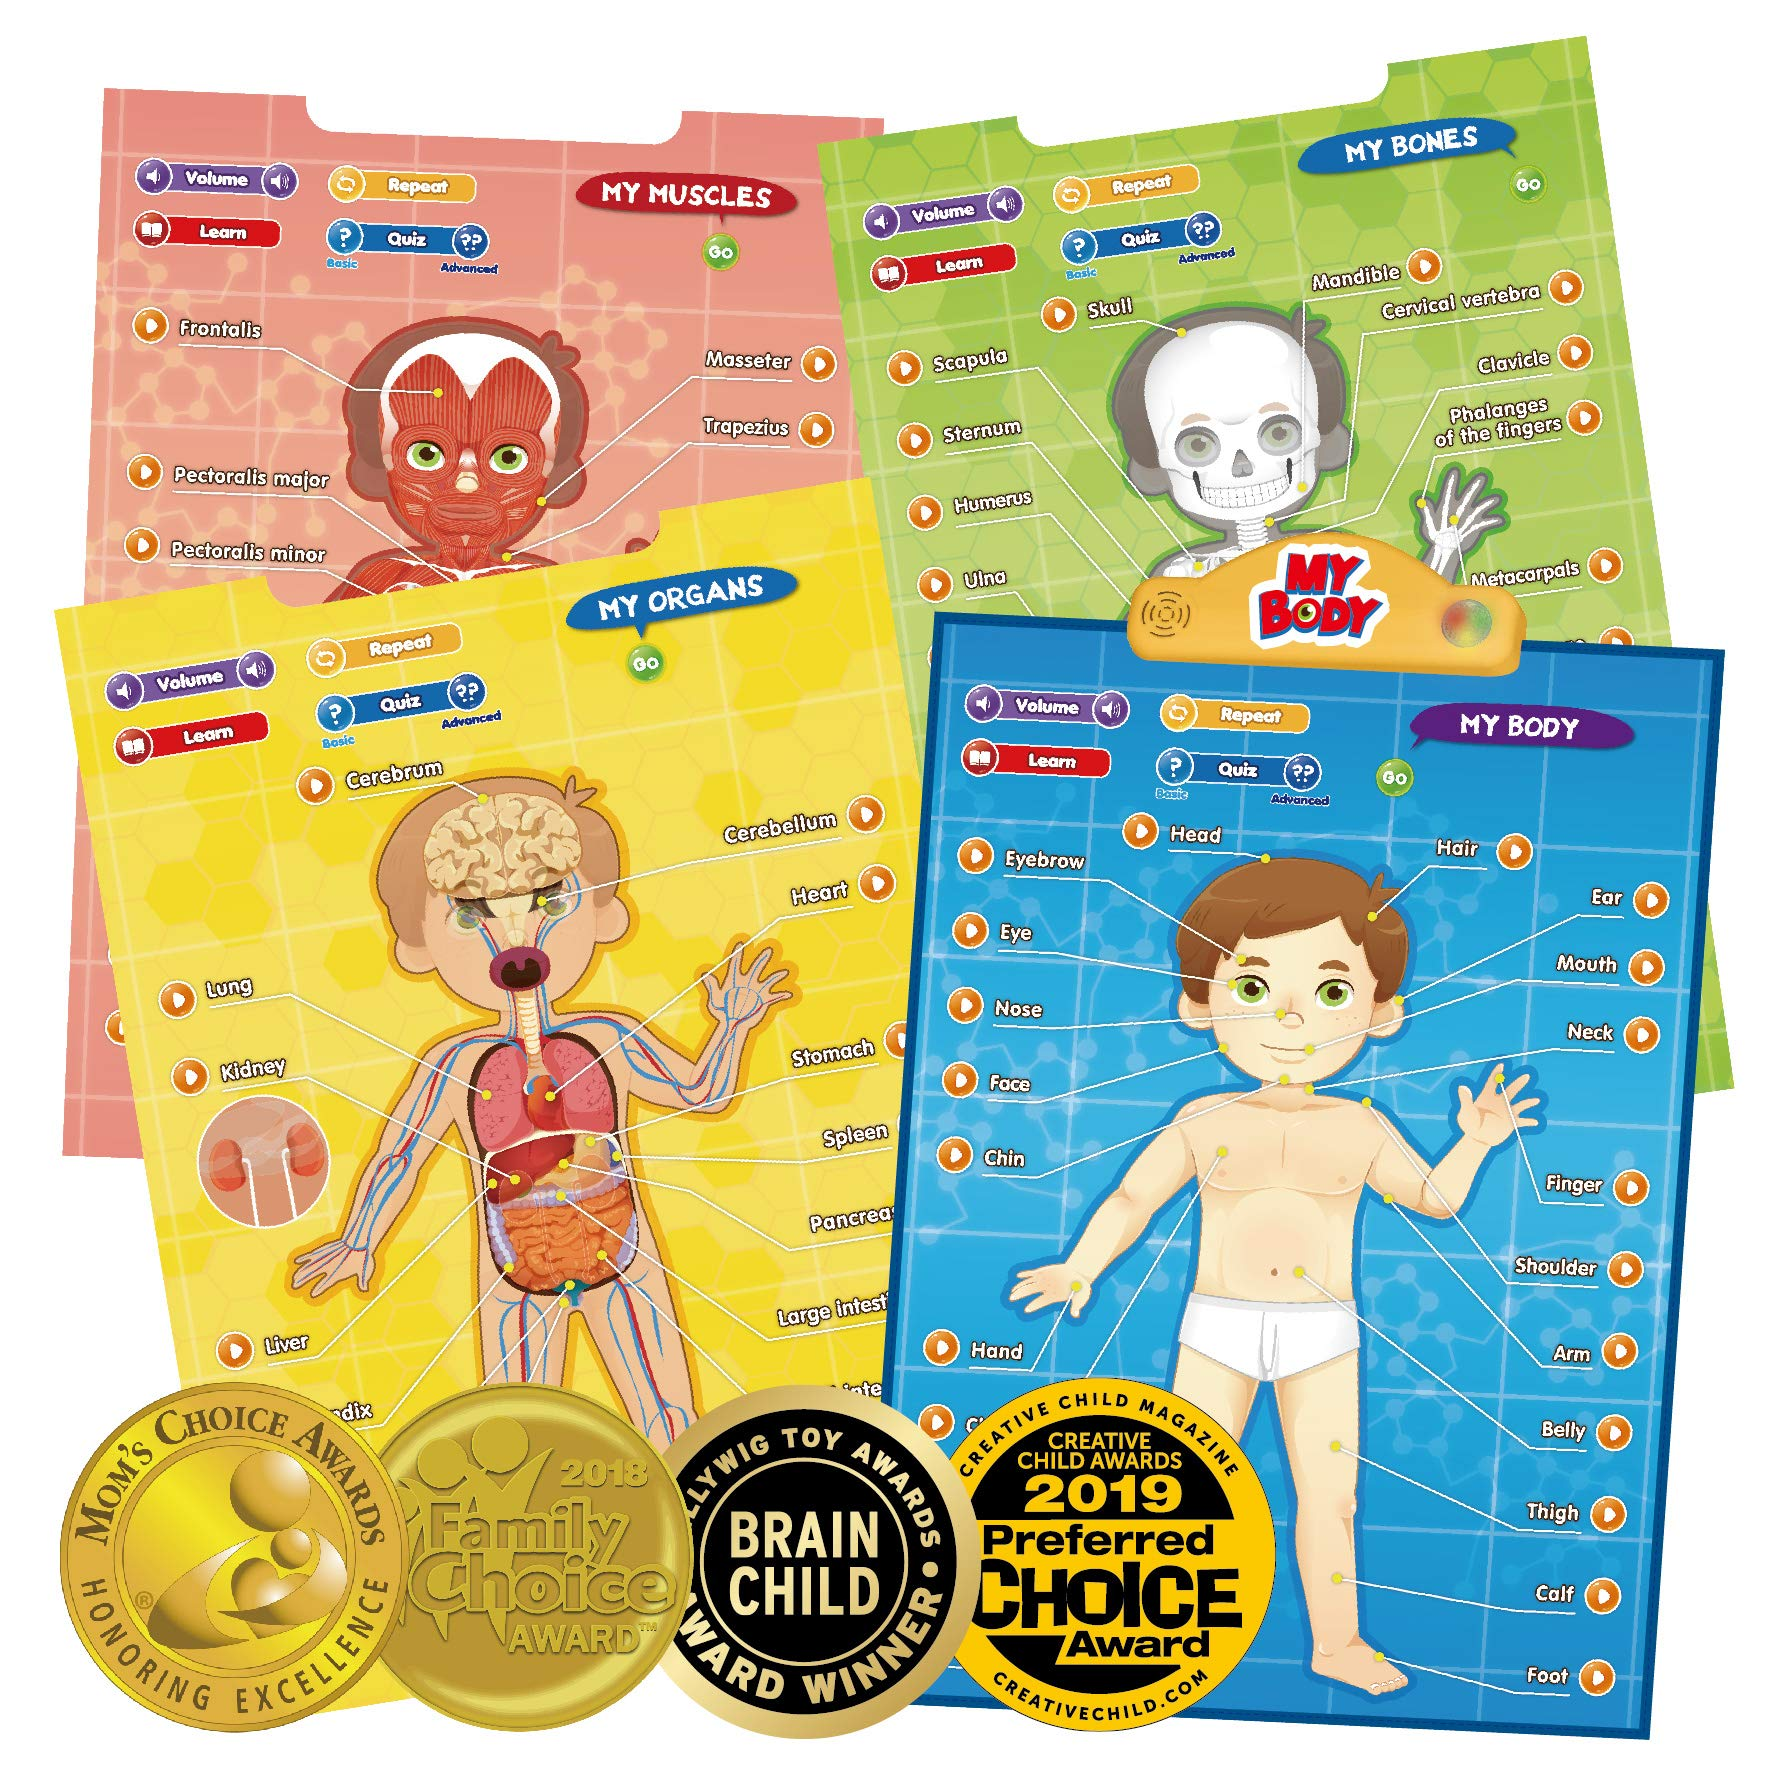 BEST LEARNING i-Poster My Body - Interactive Educational Human Anatomy Talking Game Toy System to Learn Body Parts, Organs, Muscles and Bones for Kids Aged 5 to 12 by BEST LEARNING (Image #1)